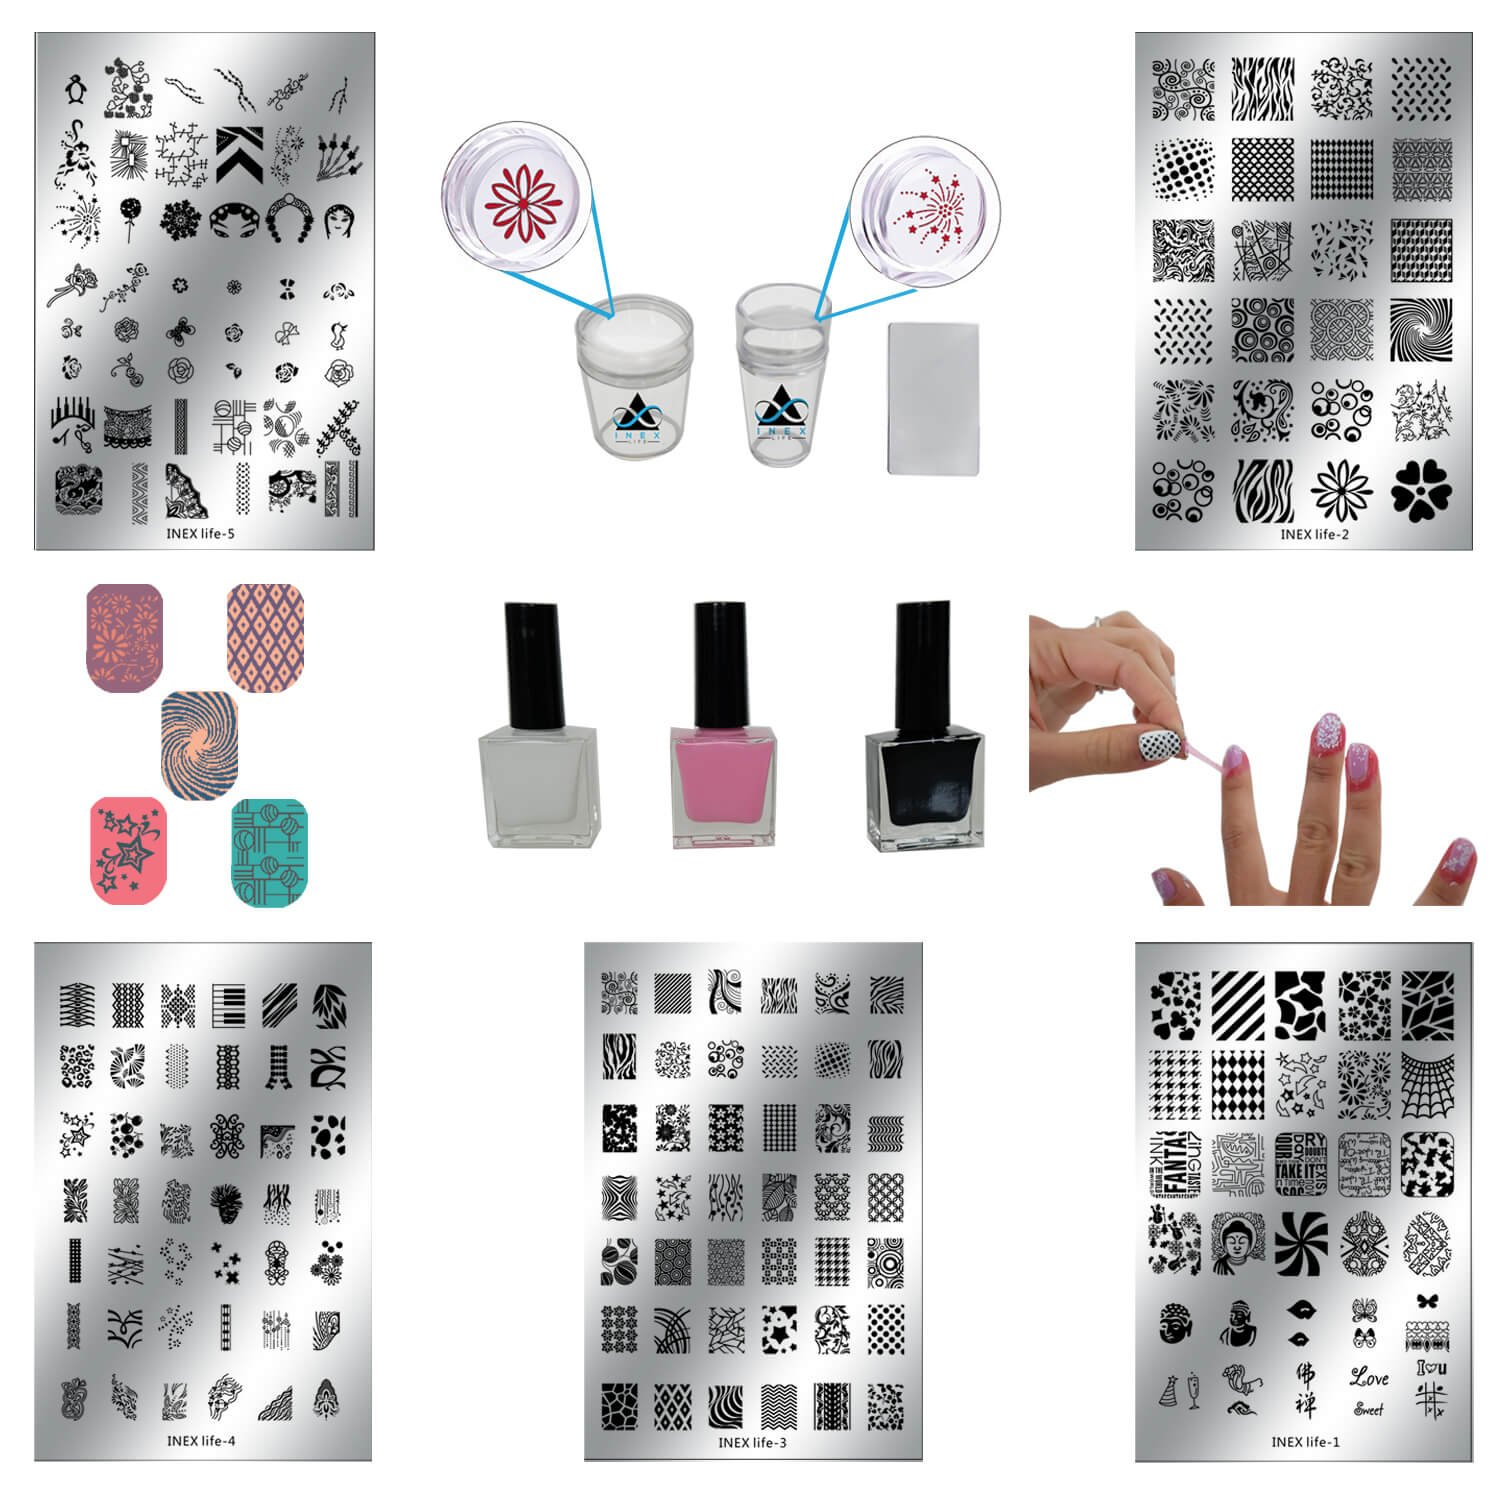 ALL-IN-ONE DIY Nail Art Stamping Kit   Latex Peel Off Liquid Tape, Black & White Nail Stamping Polish, 5 Manicure Nail Stamping Design Plates, 2 Clear Nail Stampers, and Scraper   Nail Art Tools